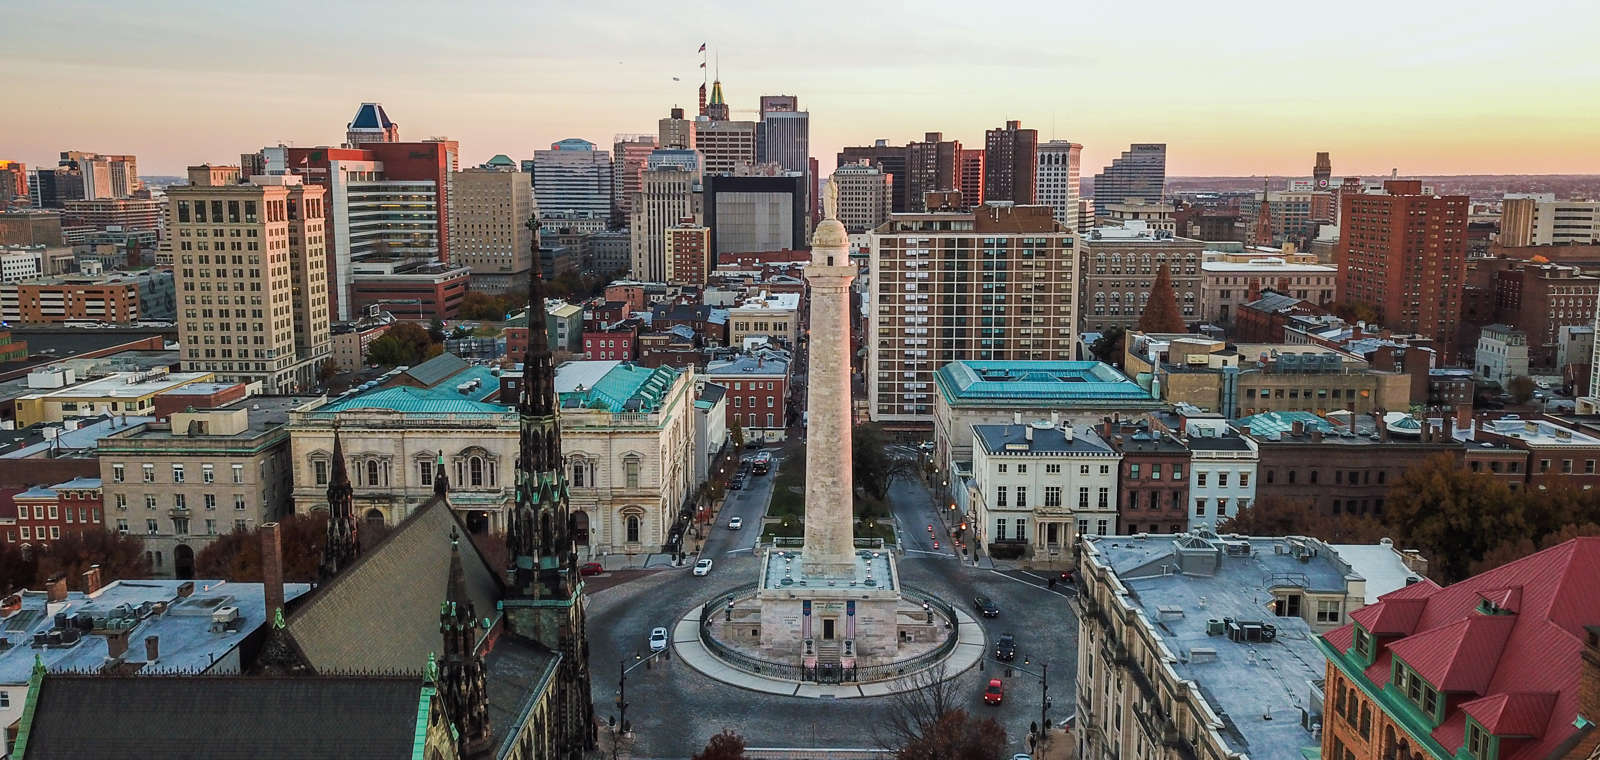 View Of Mount Vernon Place In Baltimore